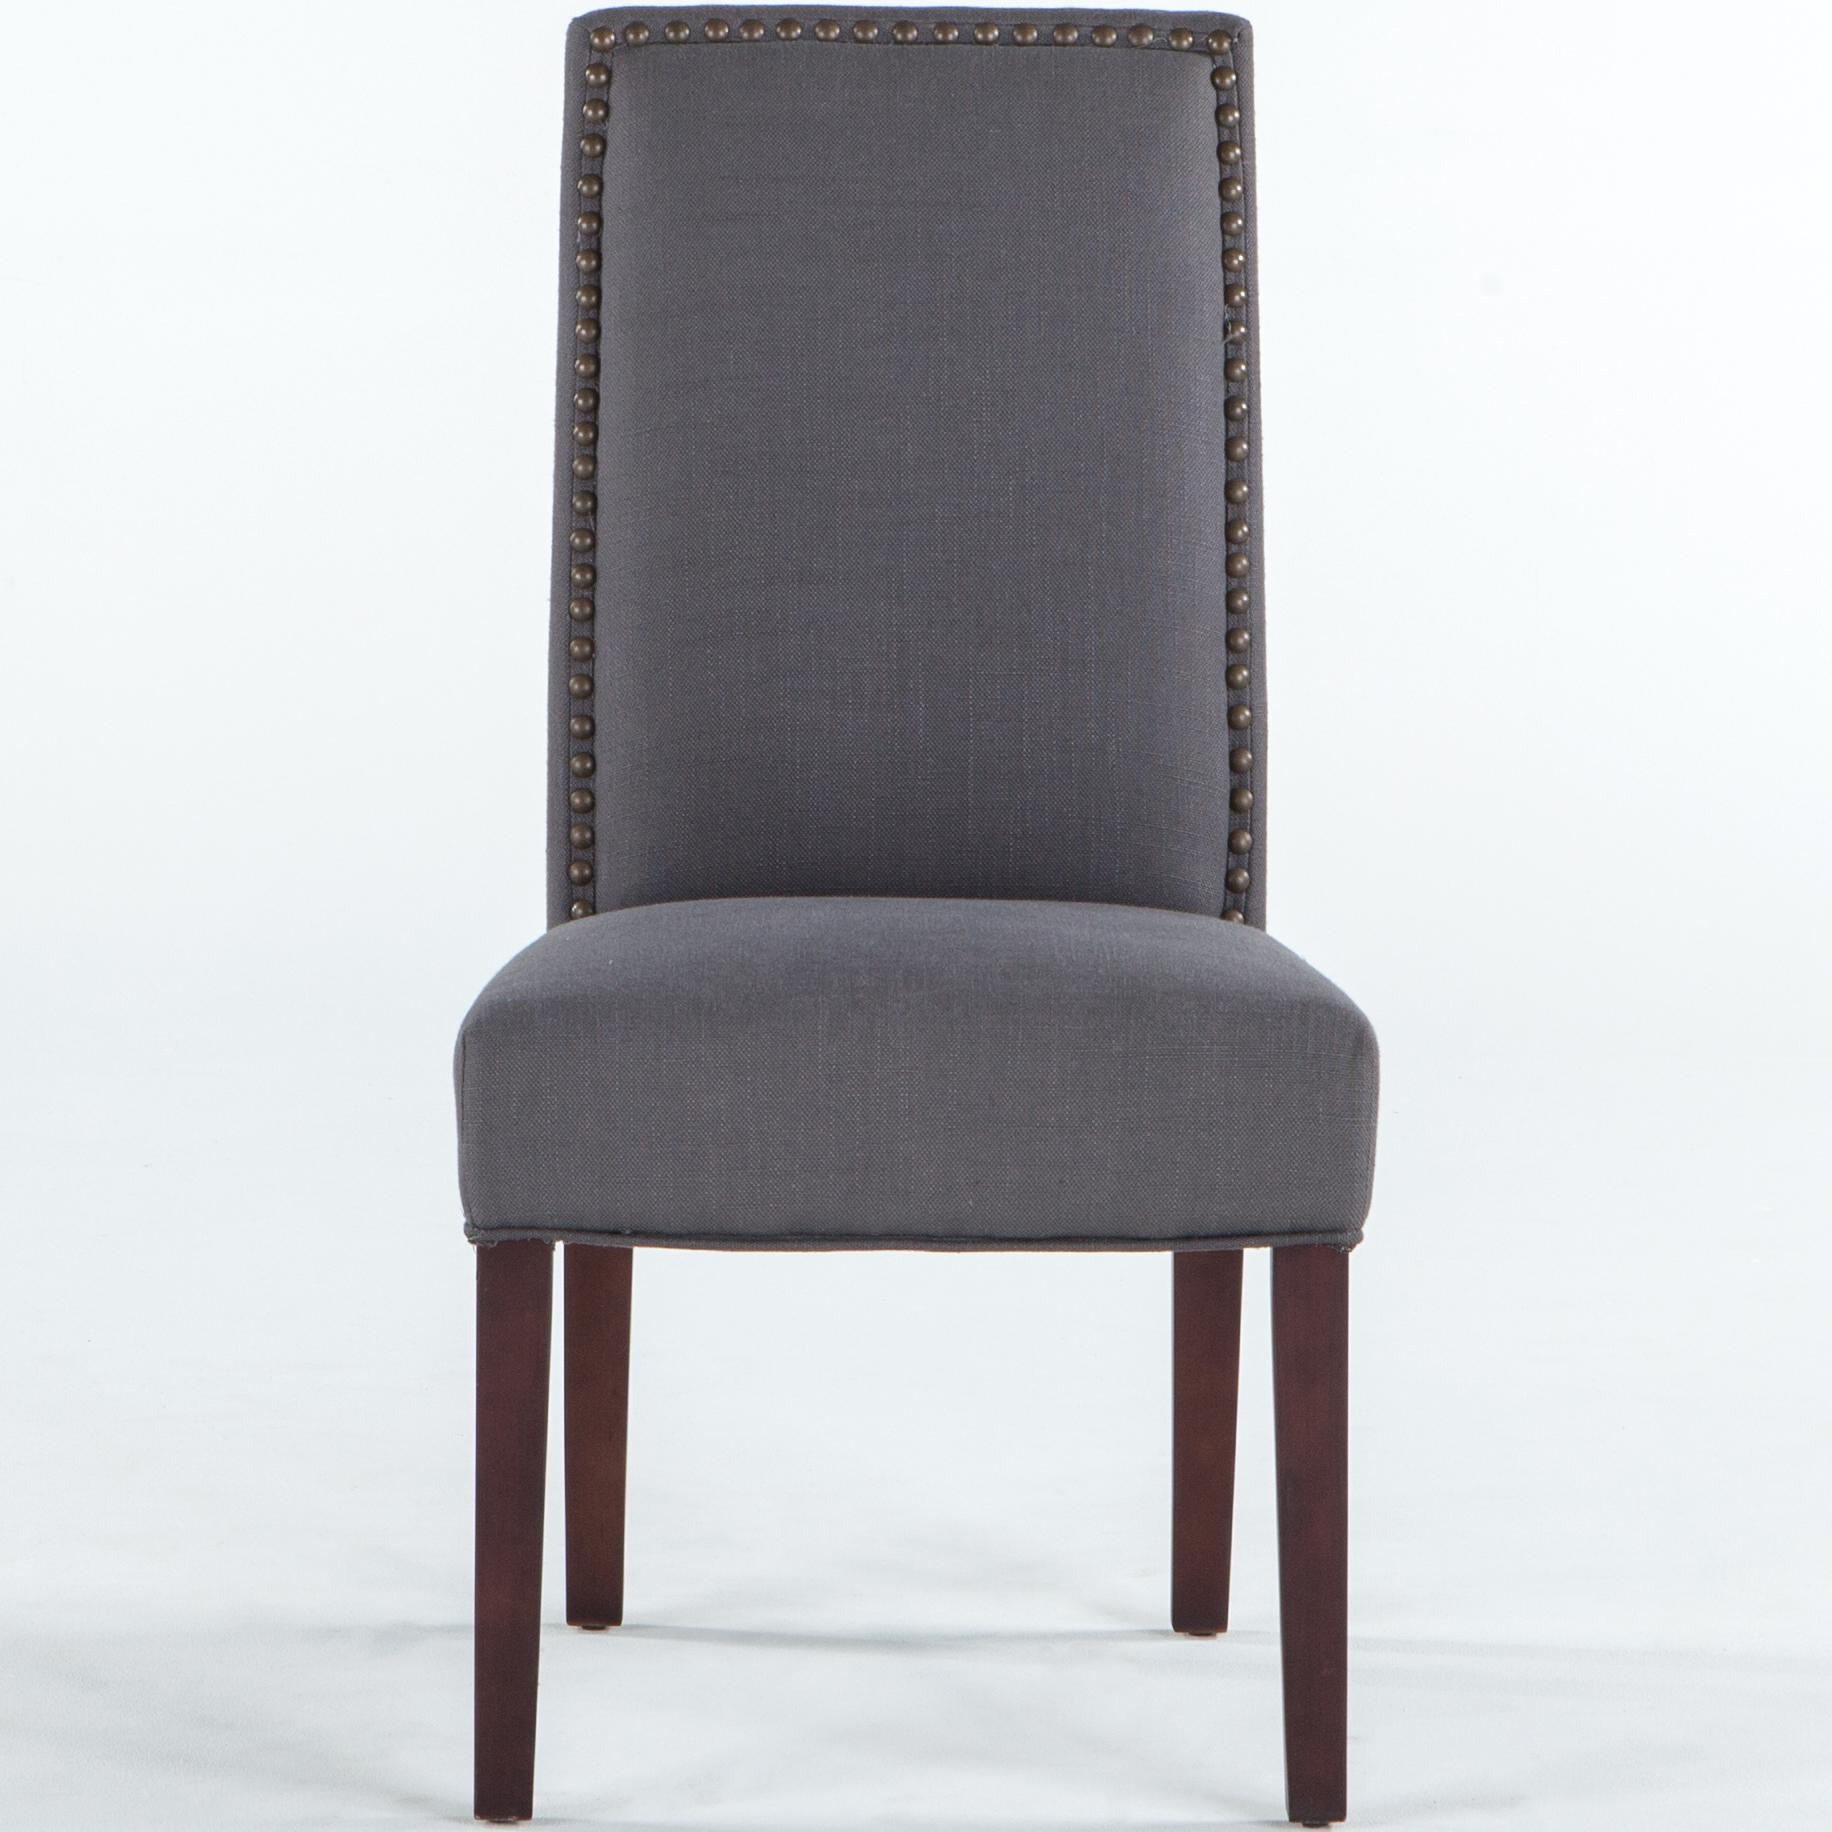 BeGlobal Meridian Dining Side Chair - Item Number: G206-JONES-11-D-Gray